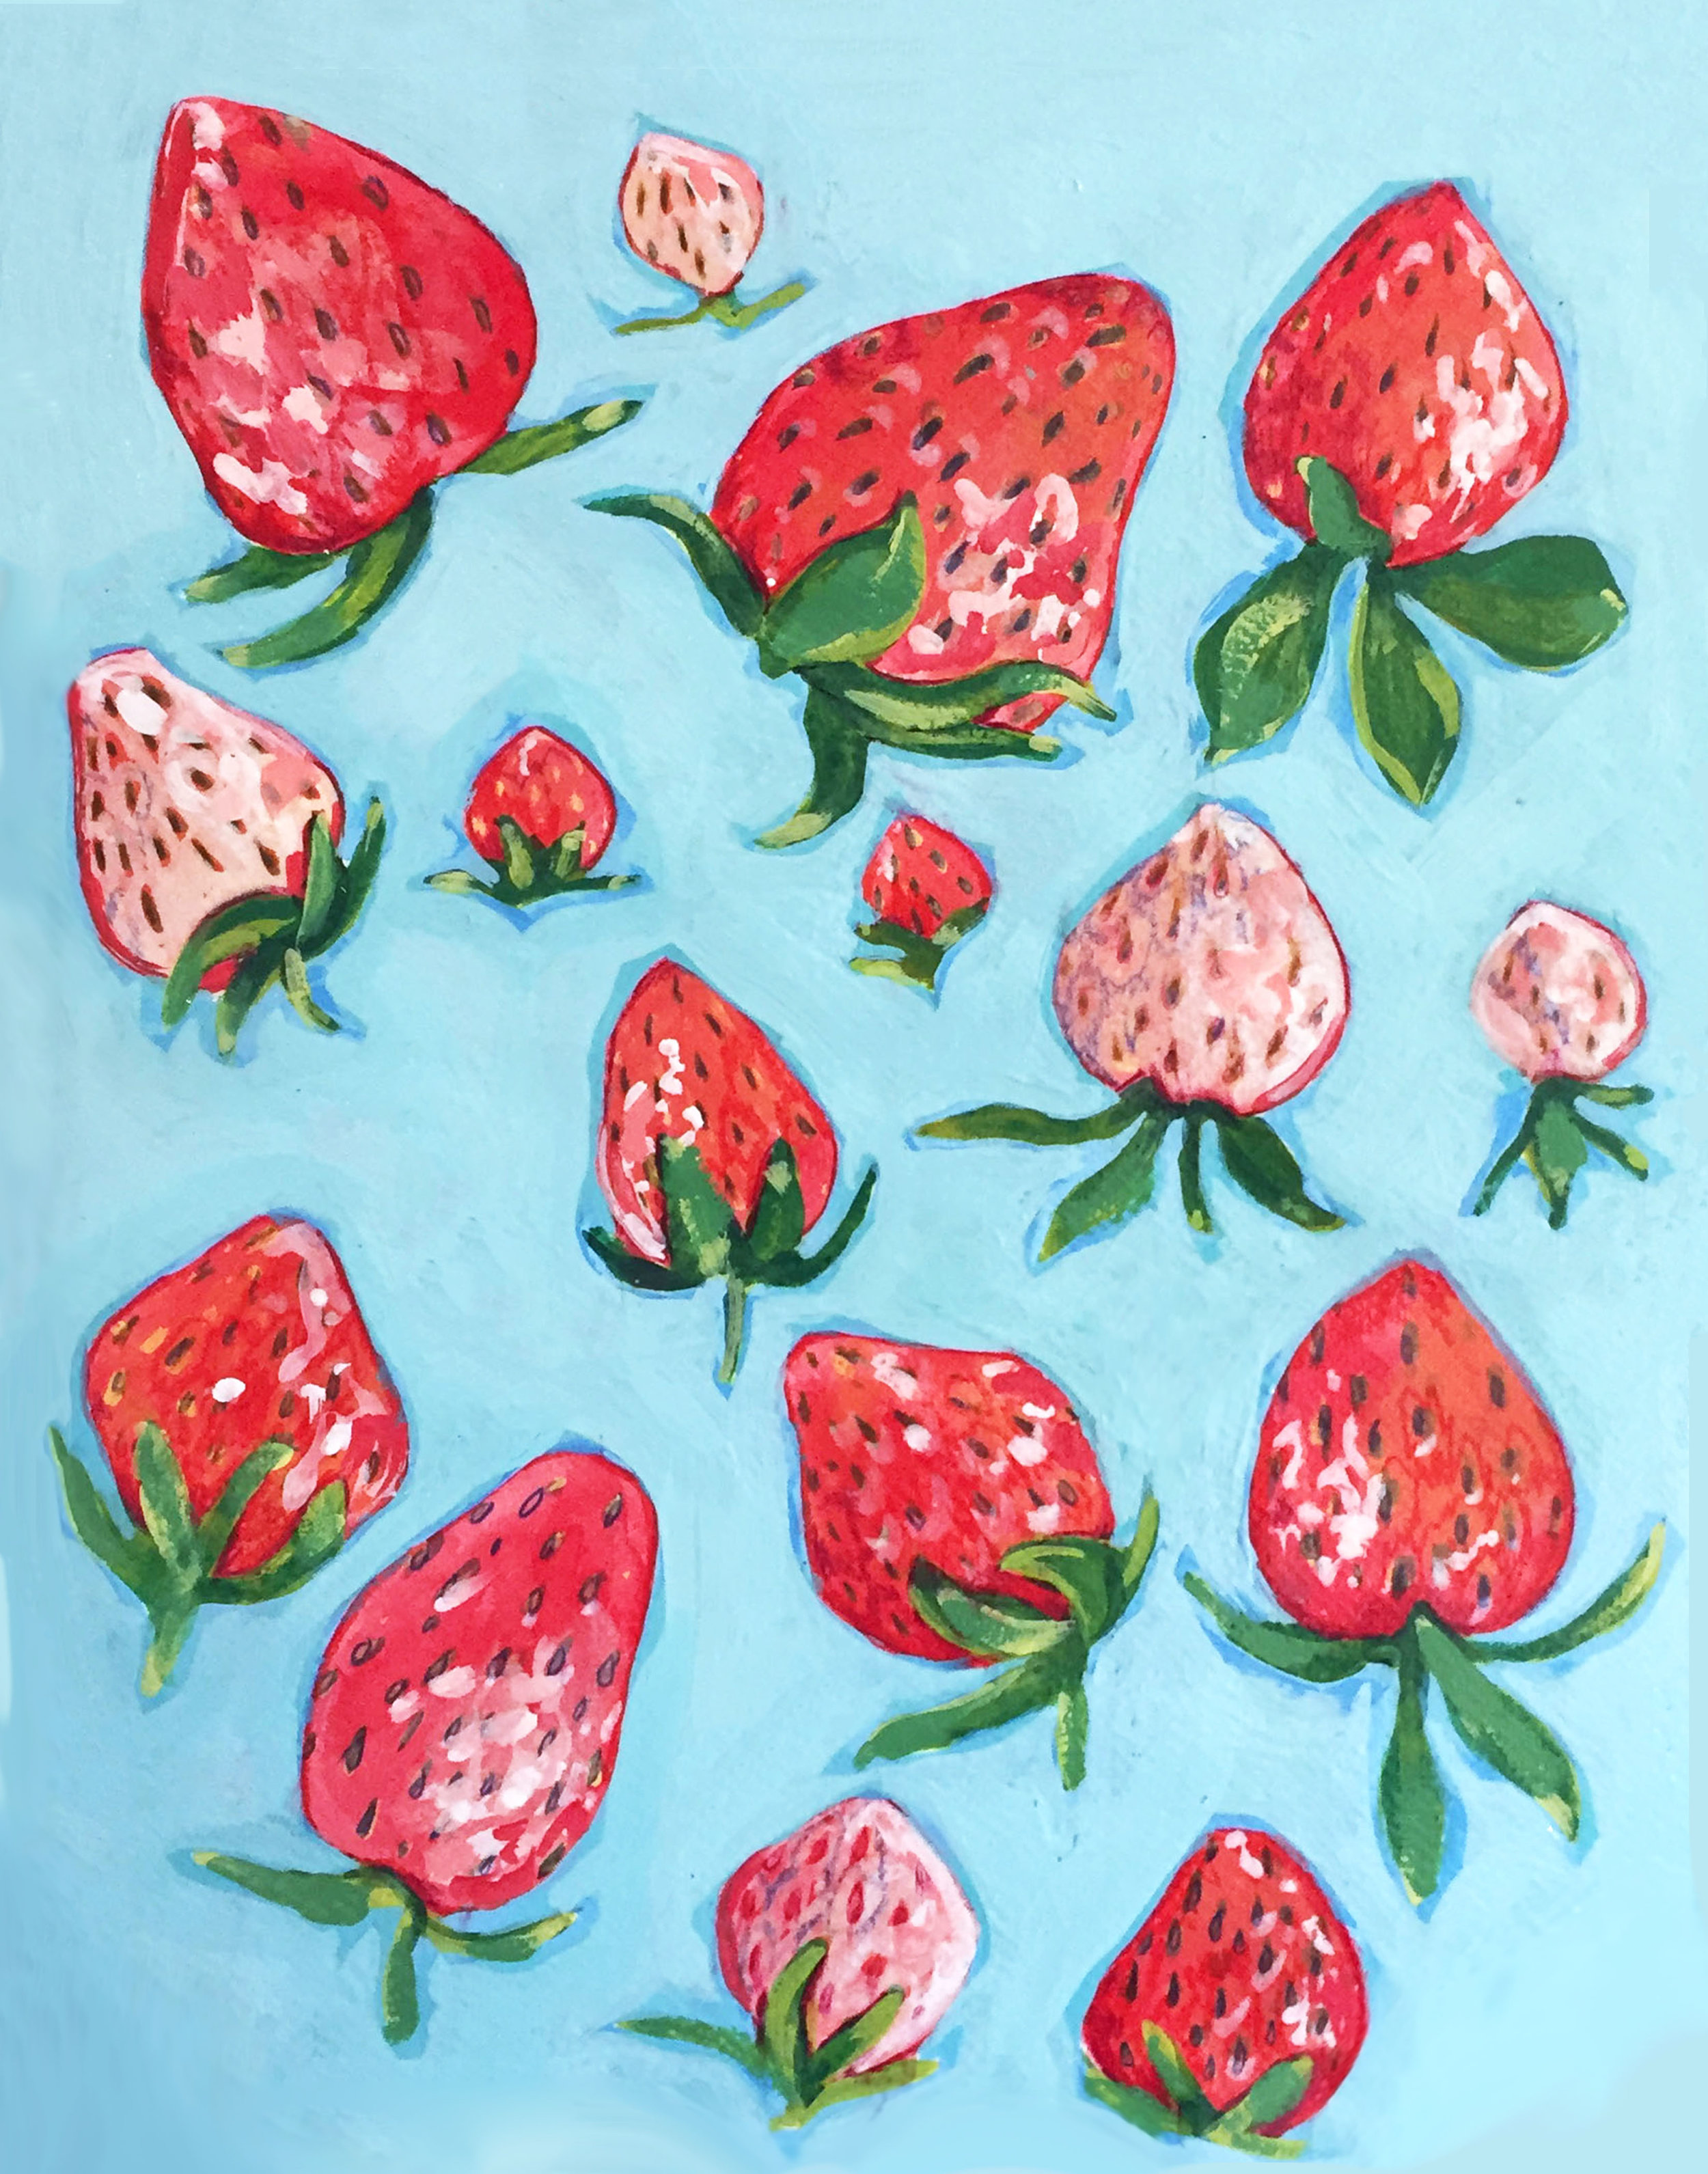 Strawberry Jam - Rachael Nerney14